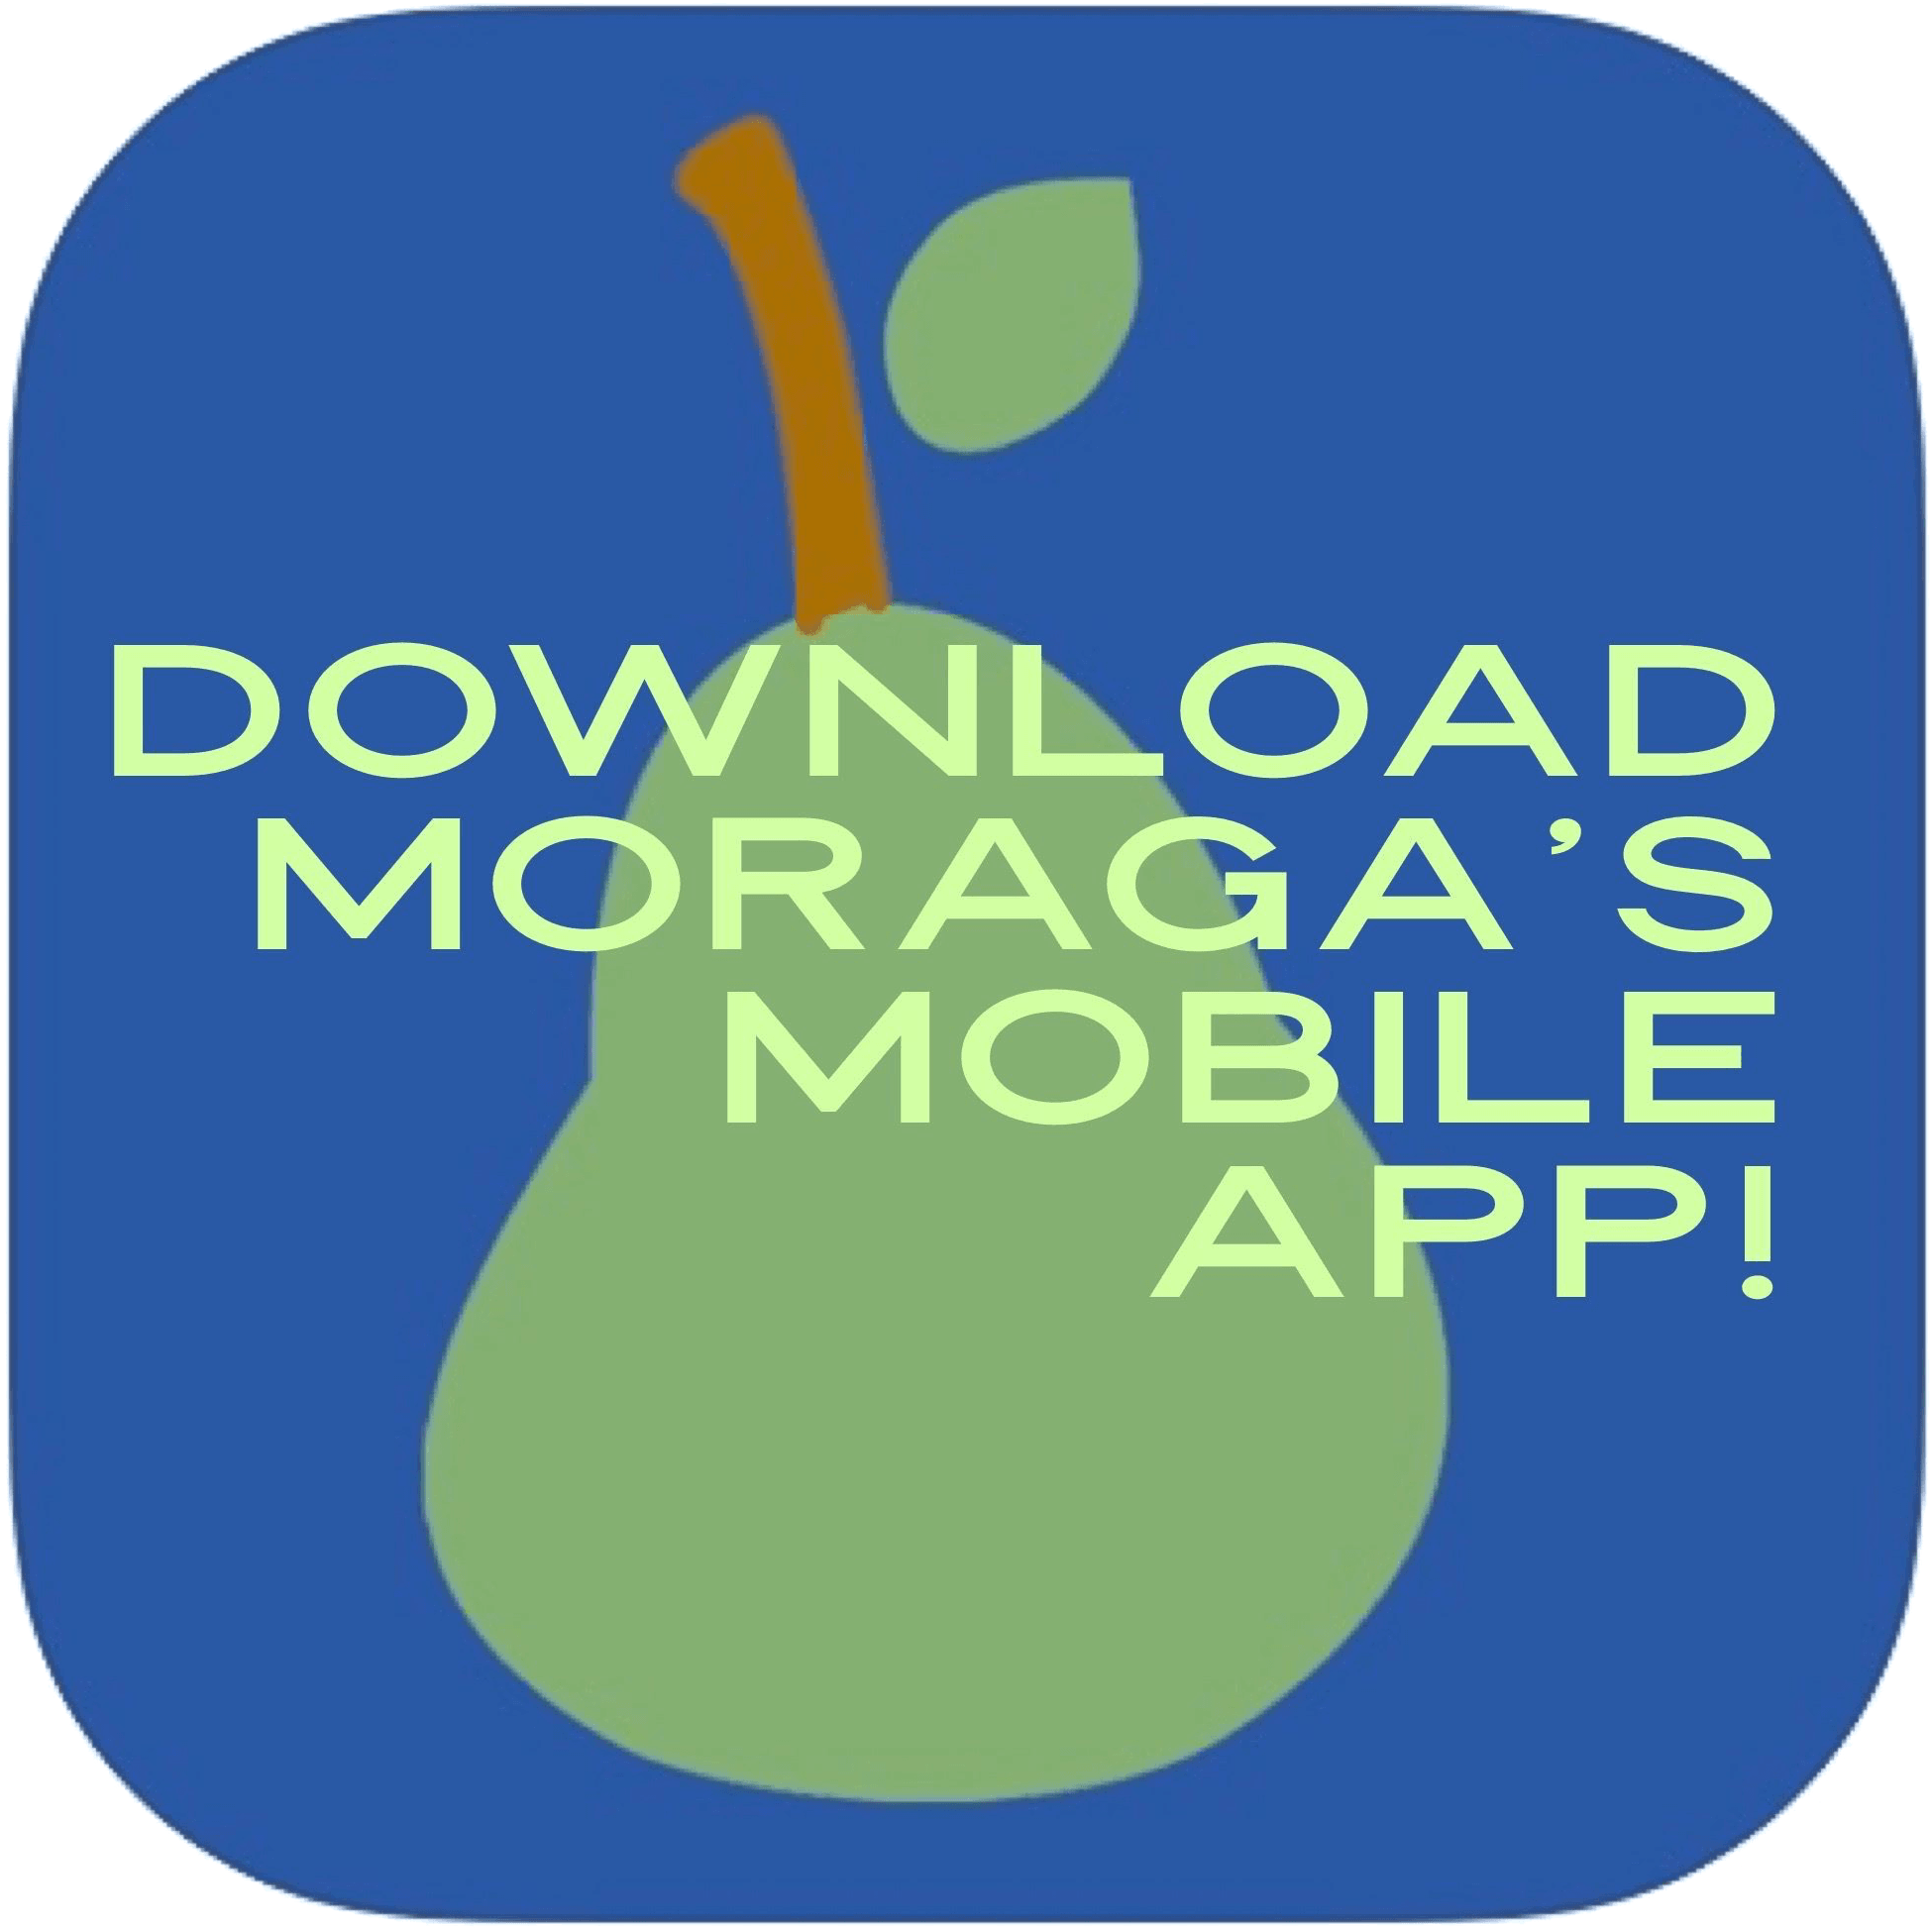 Pear graphic promoting Mobile Moraga App